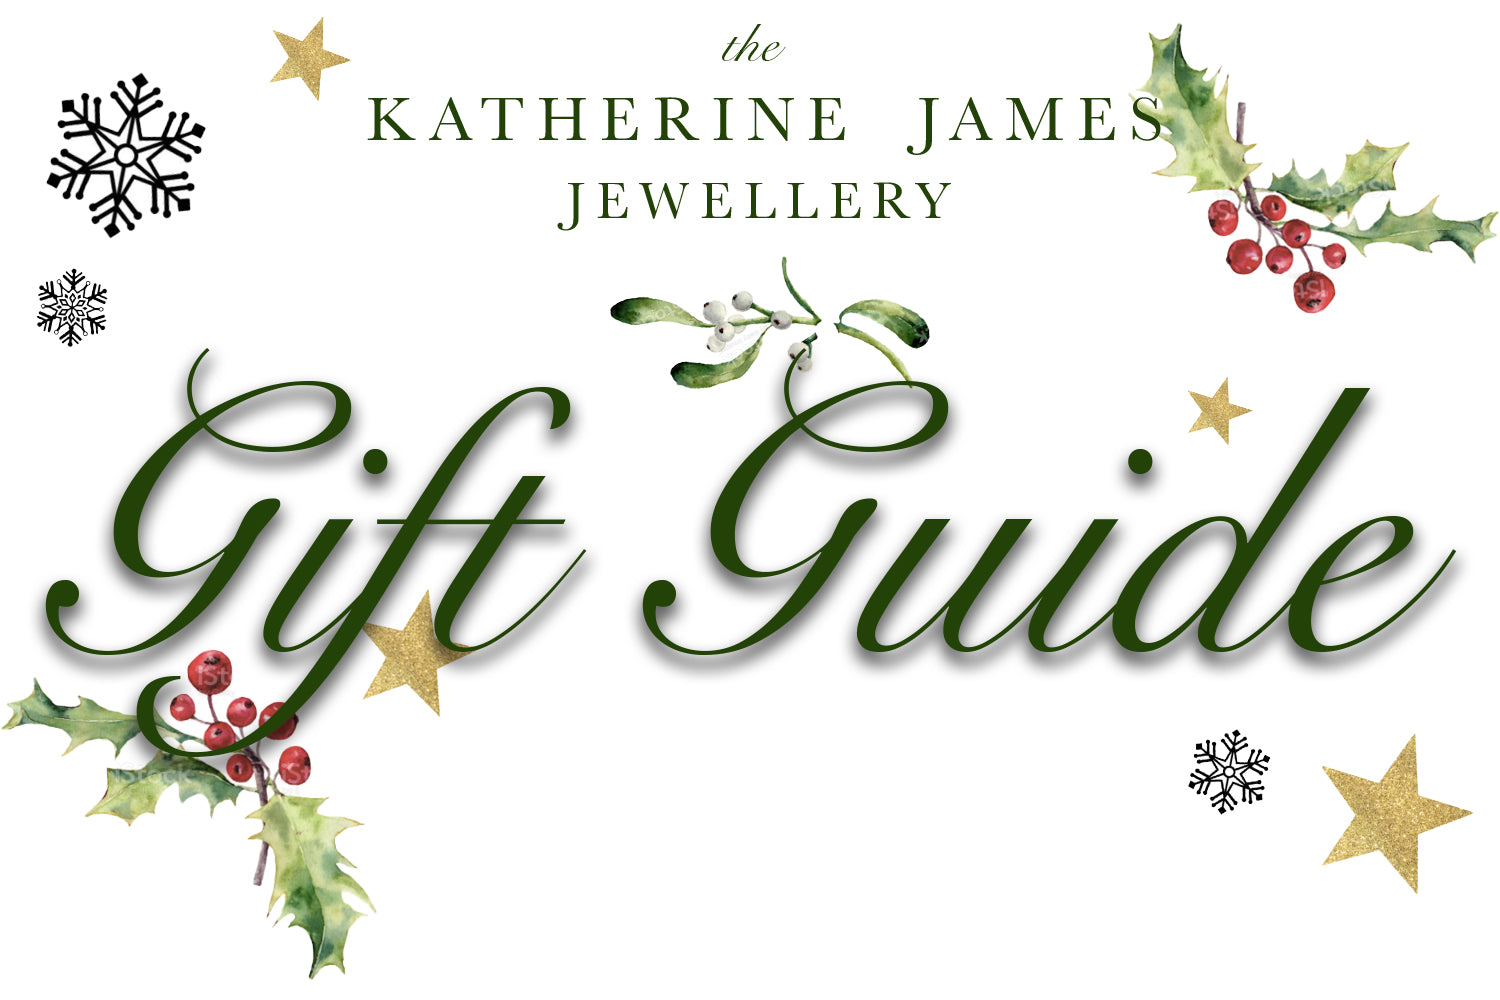 Katherine James Jewellery Gift Guide 2020